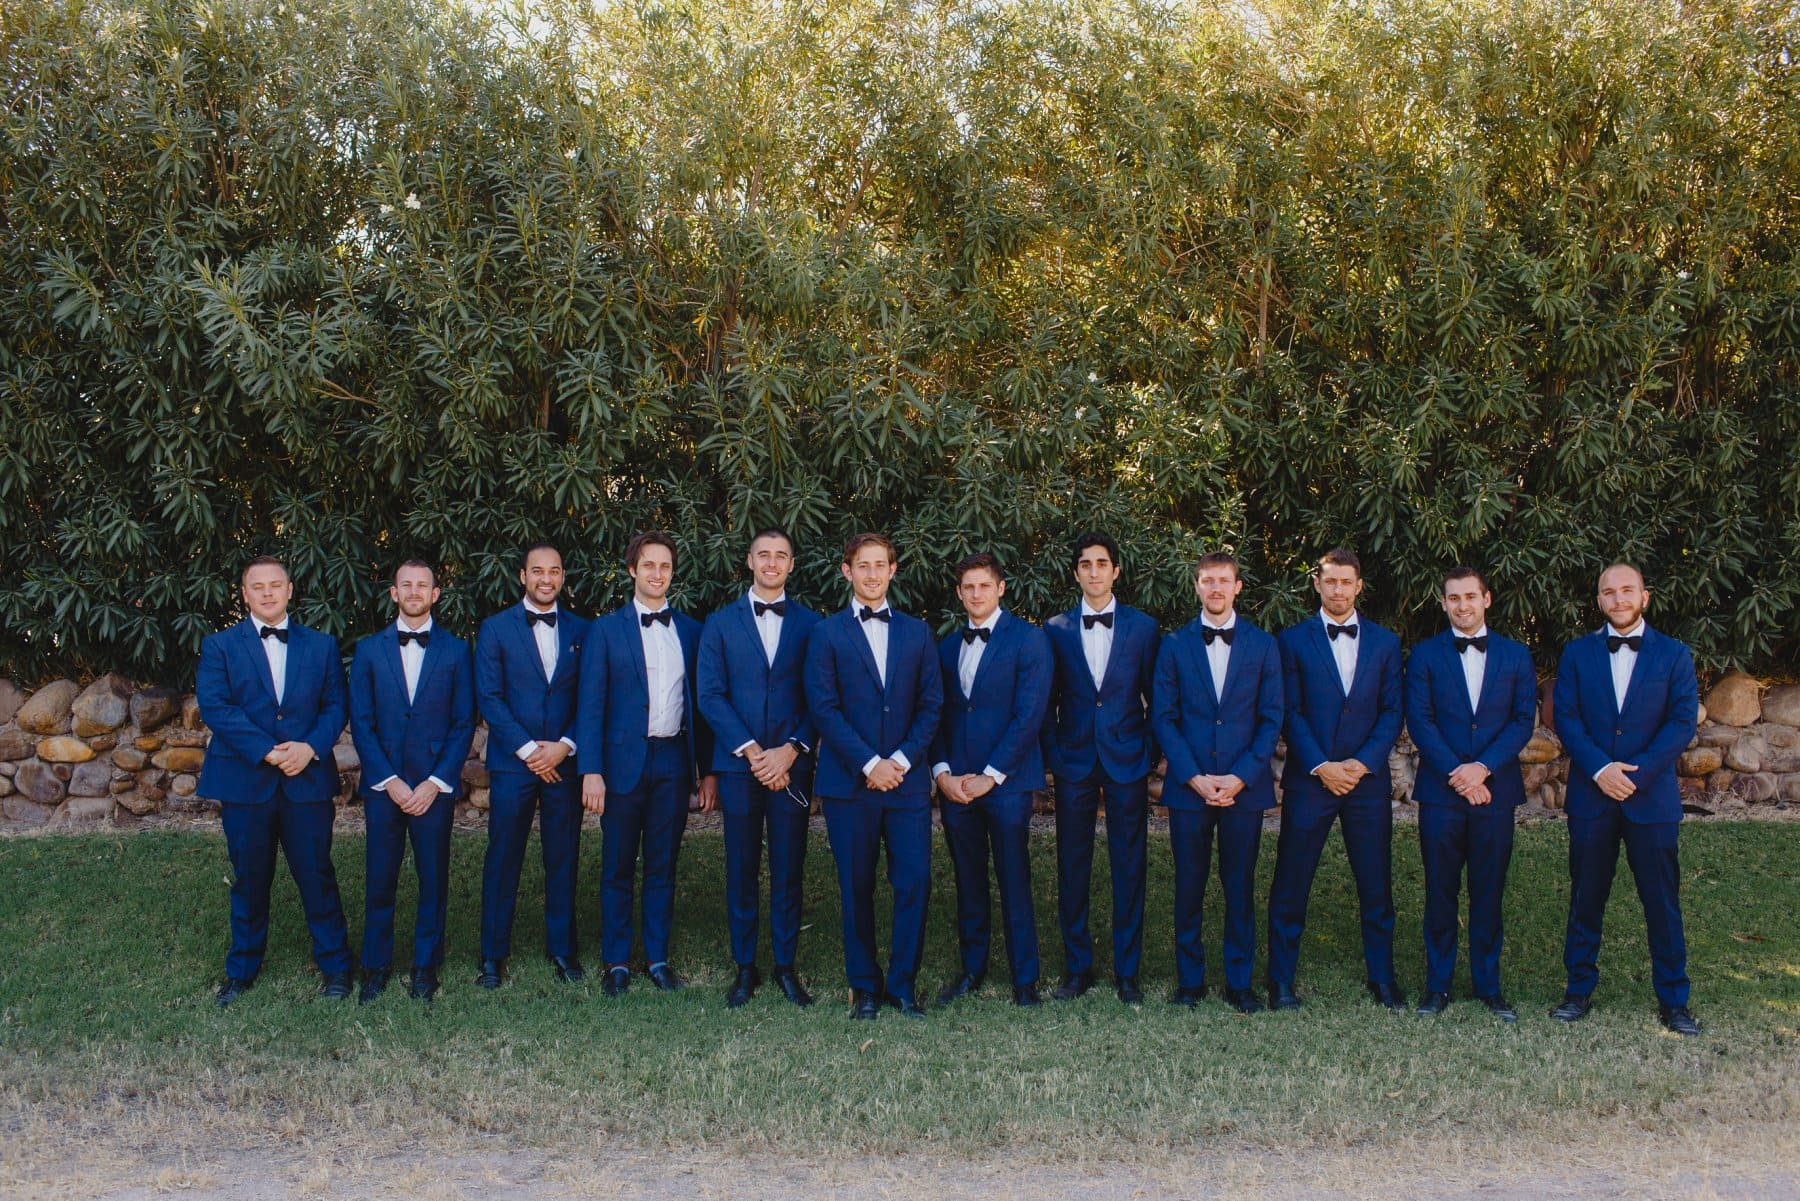 groom & groomsmen at Saguaro Lake Ranch wedding blue suits and bowties